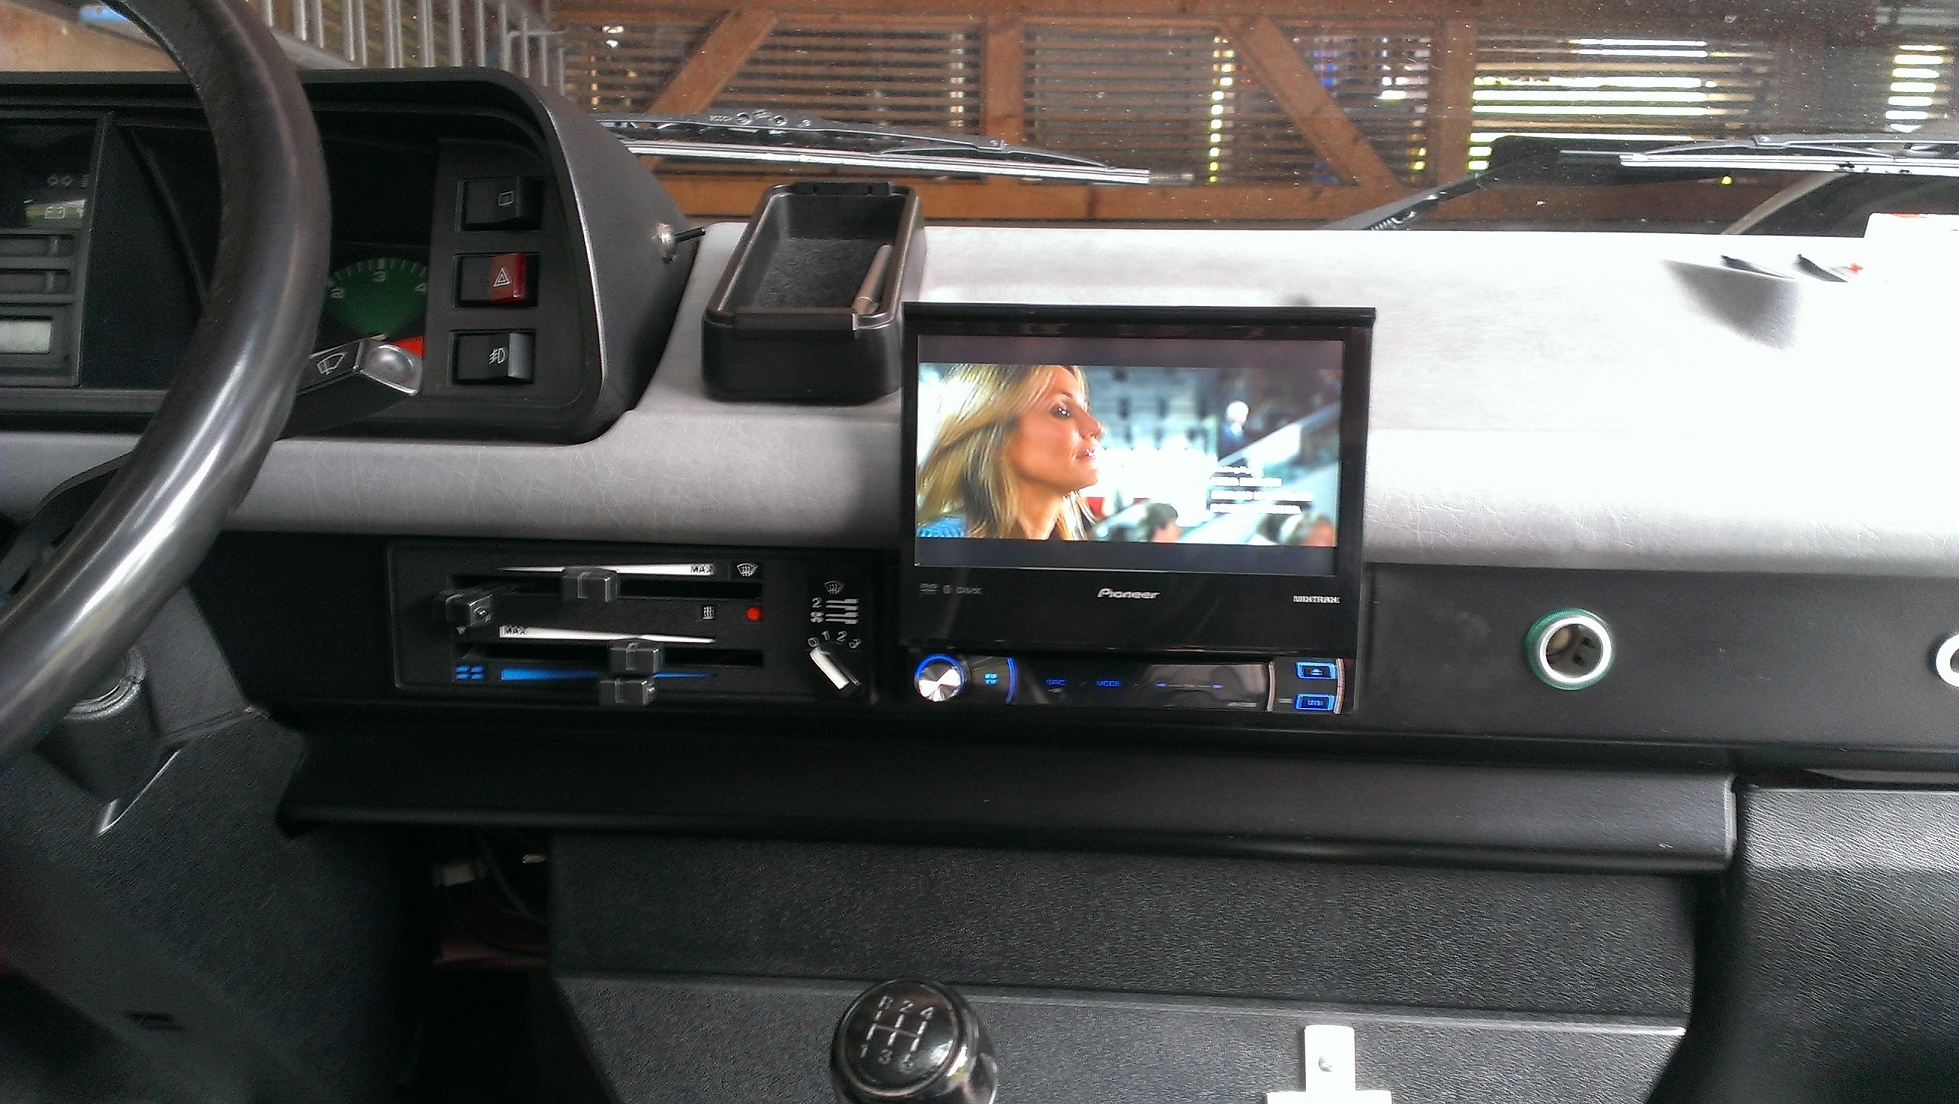 autoradio mit display elektronik car hifi vwbusforum ch